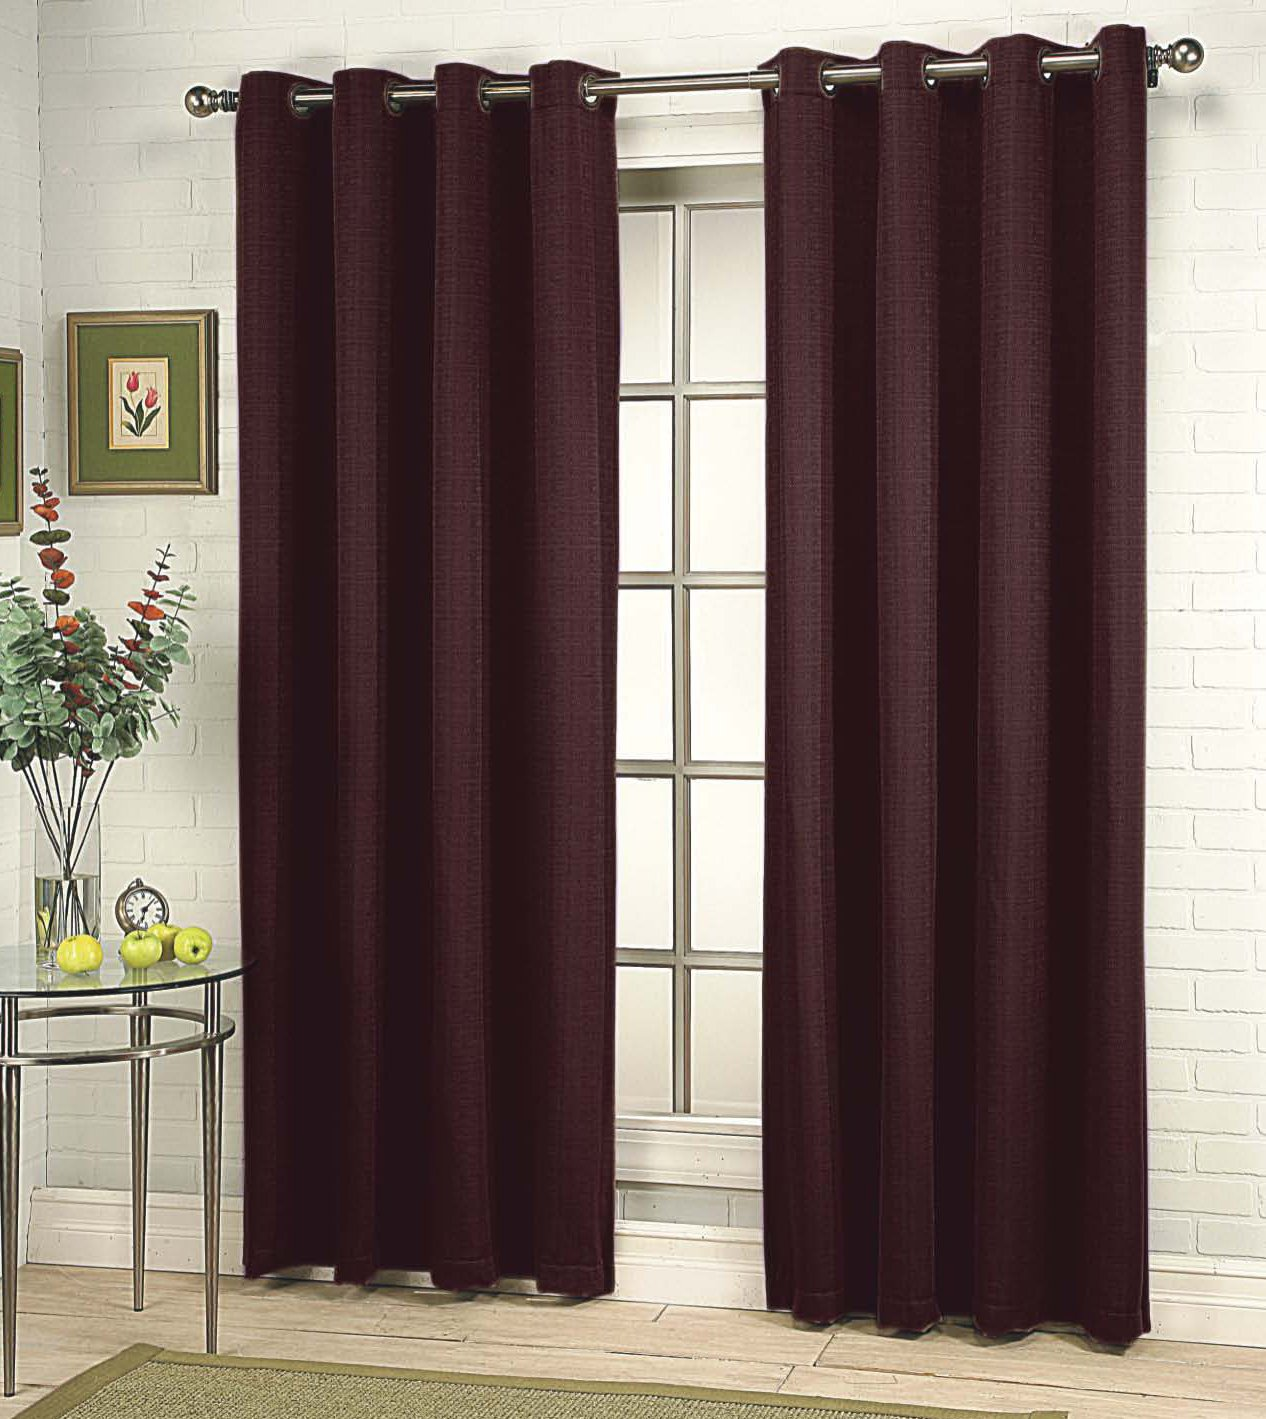 56 by 95-Inch Stylemaster Home Products Renaissance Home Fashion Gramercy Grommet Panel Garnet